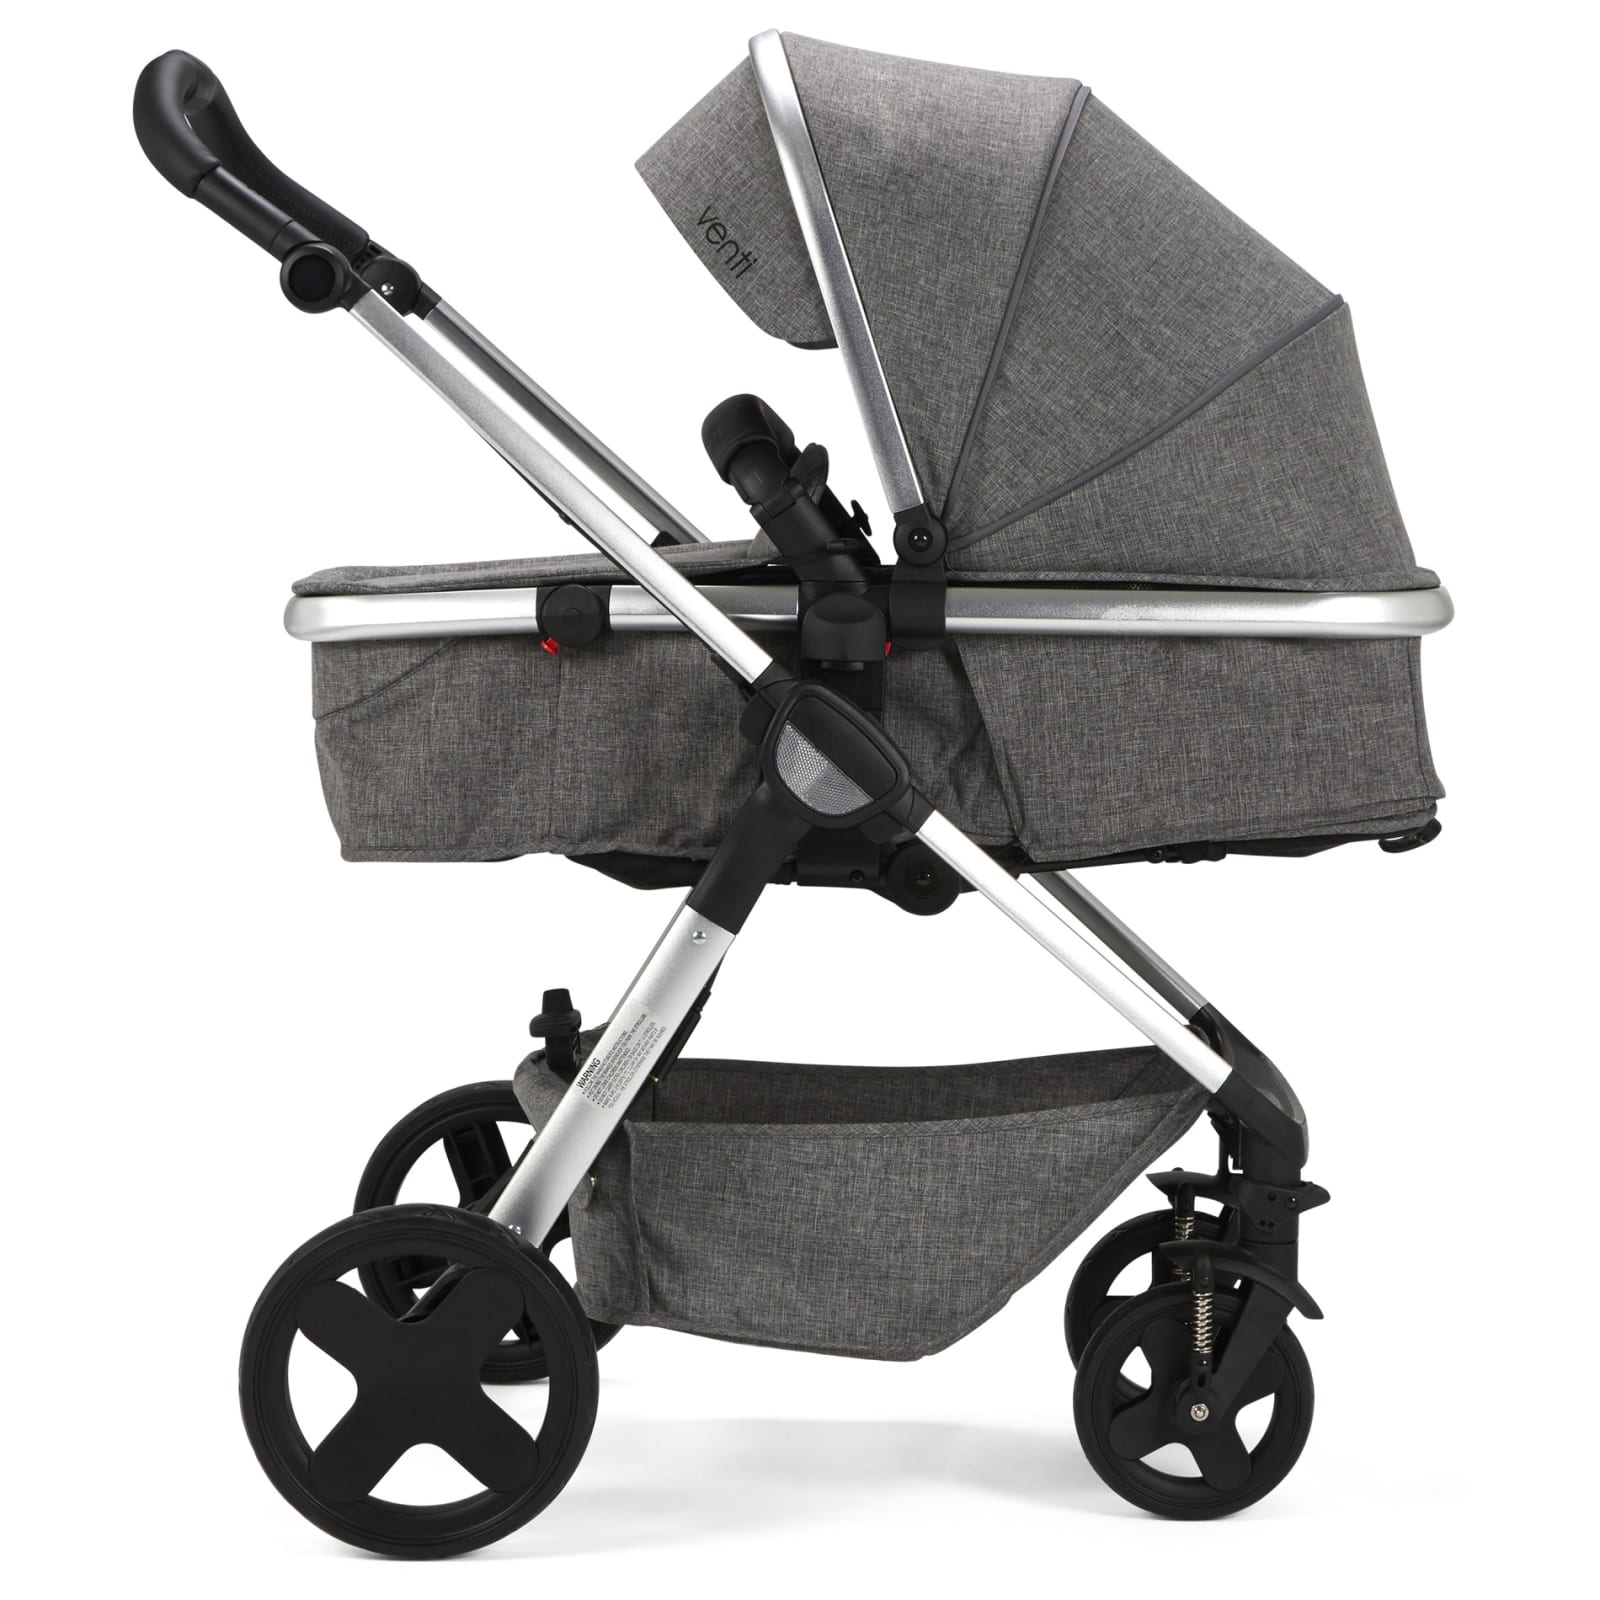 Venti 2 in 1 Pushchair  – Grey product image